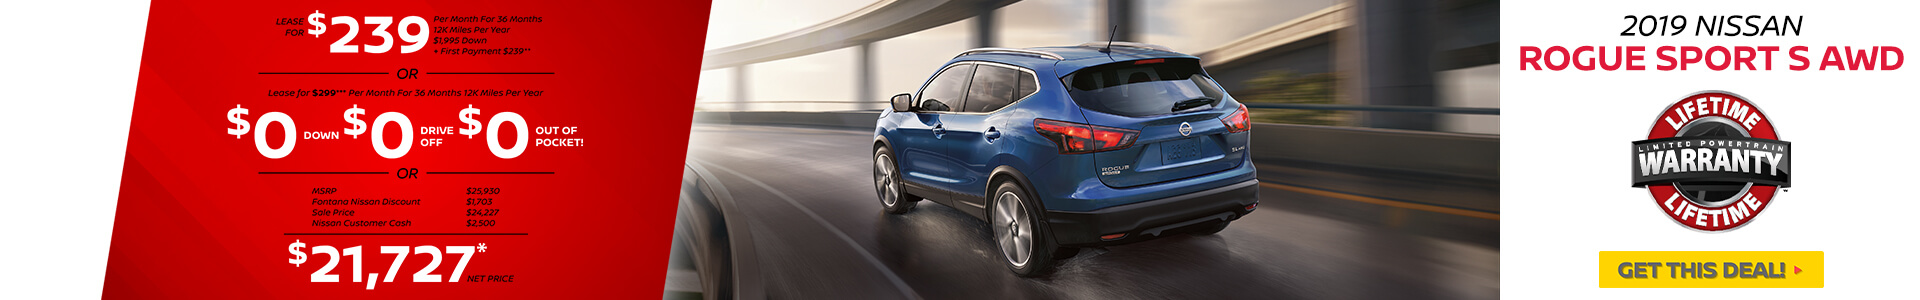 Nissan Rogue Sport $239 Lease